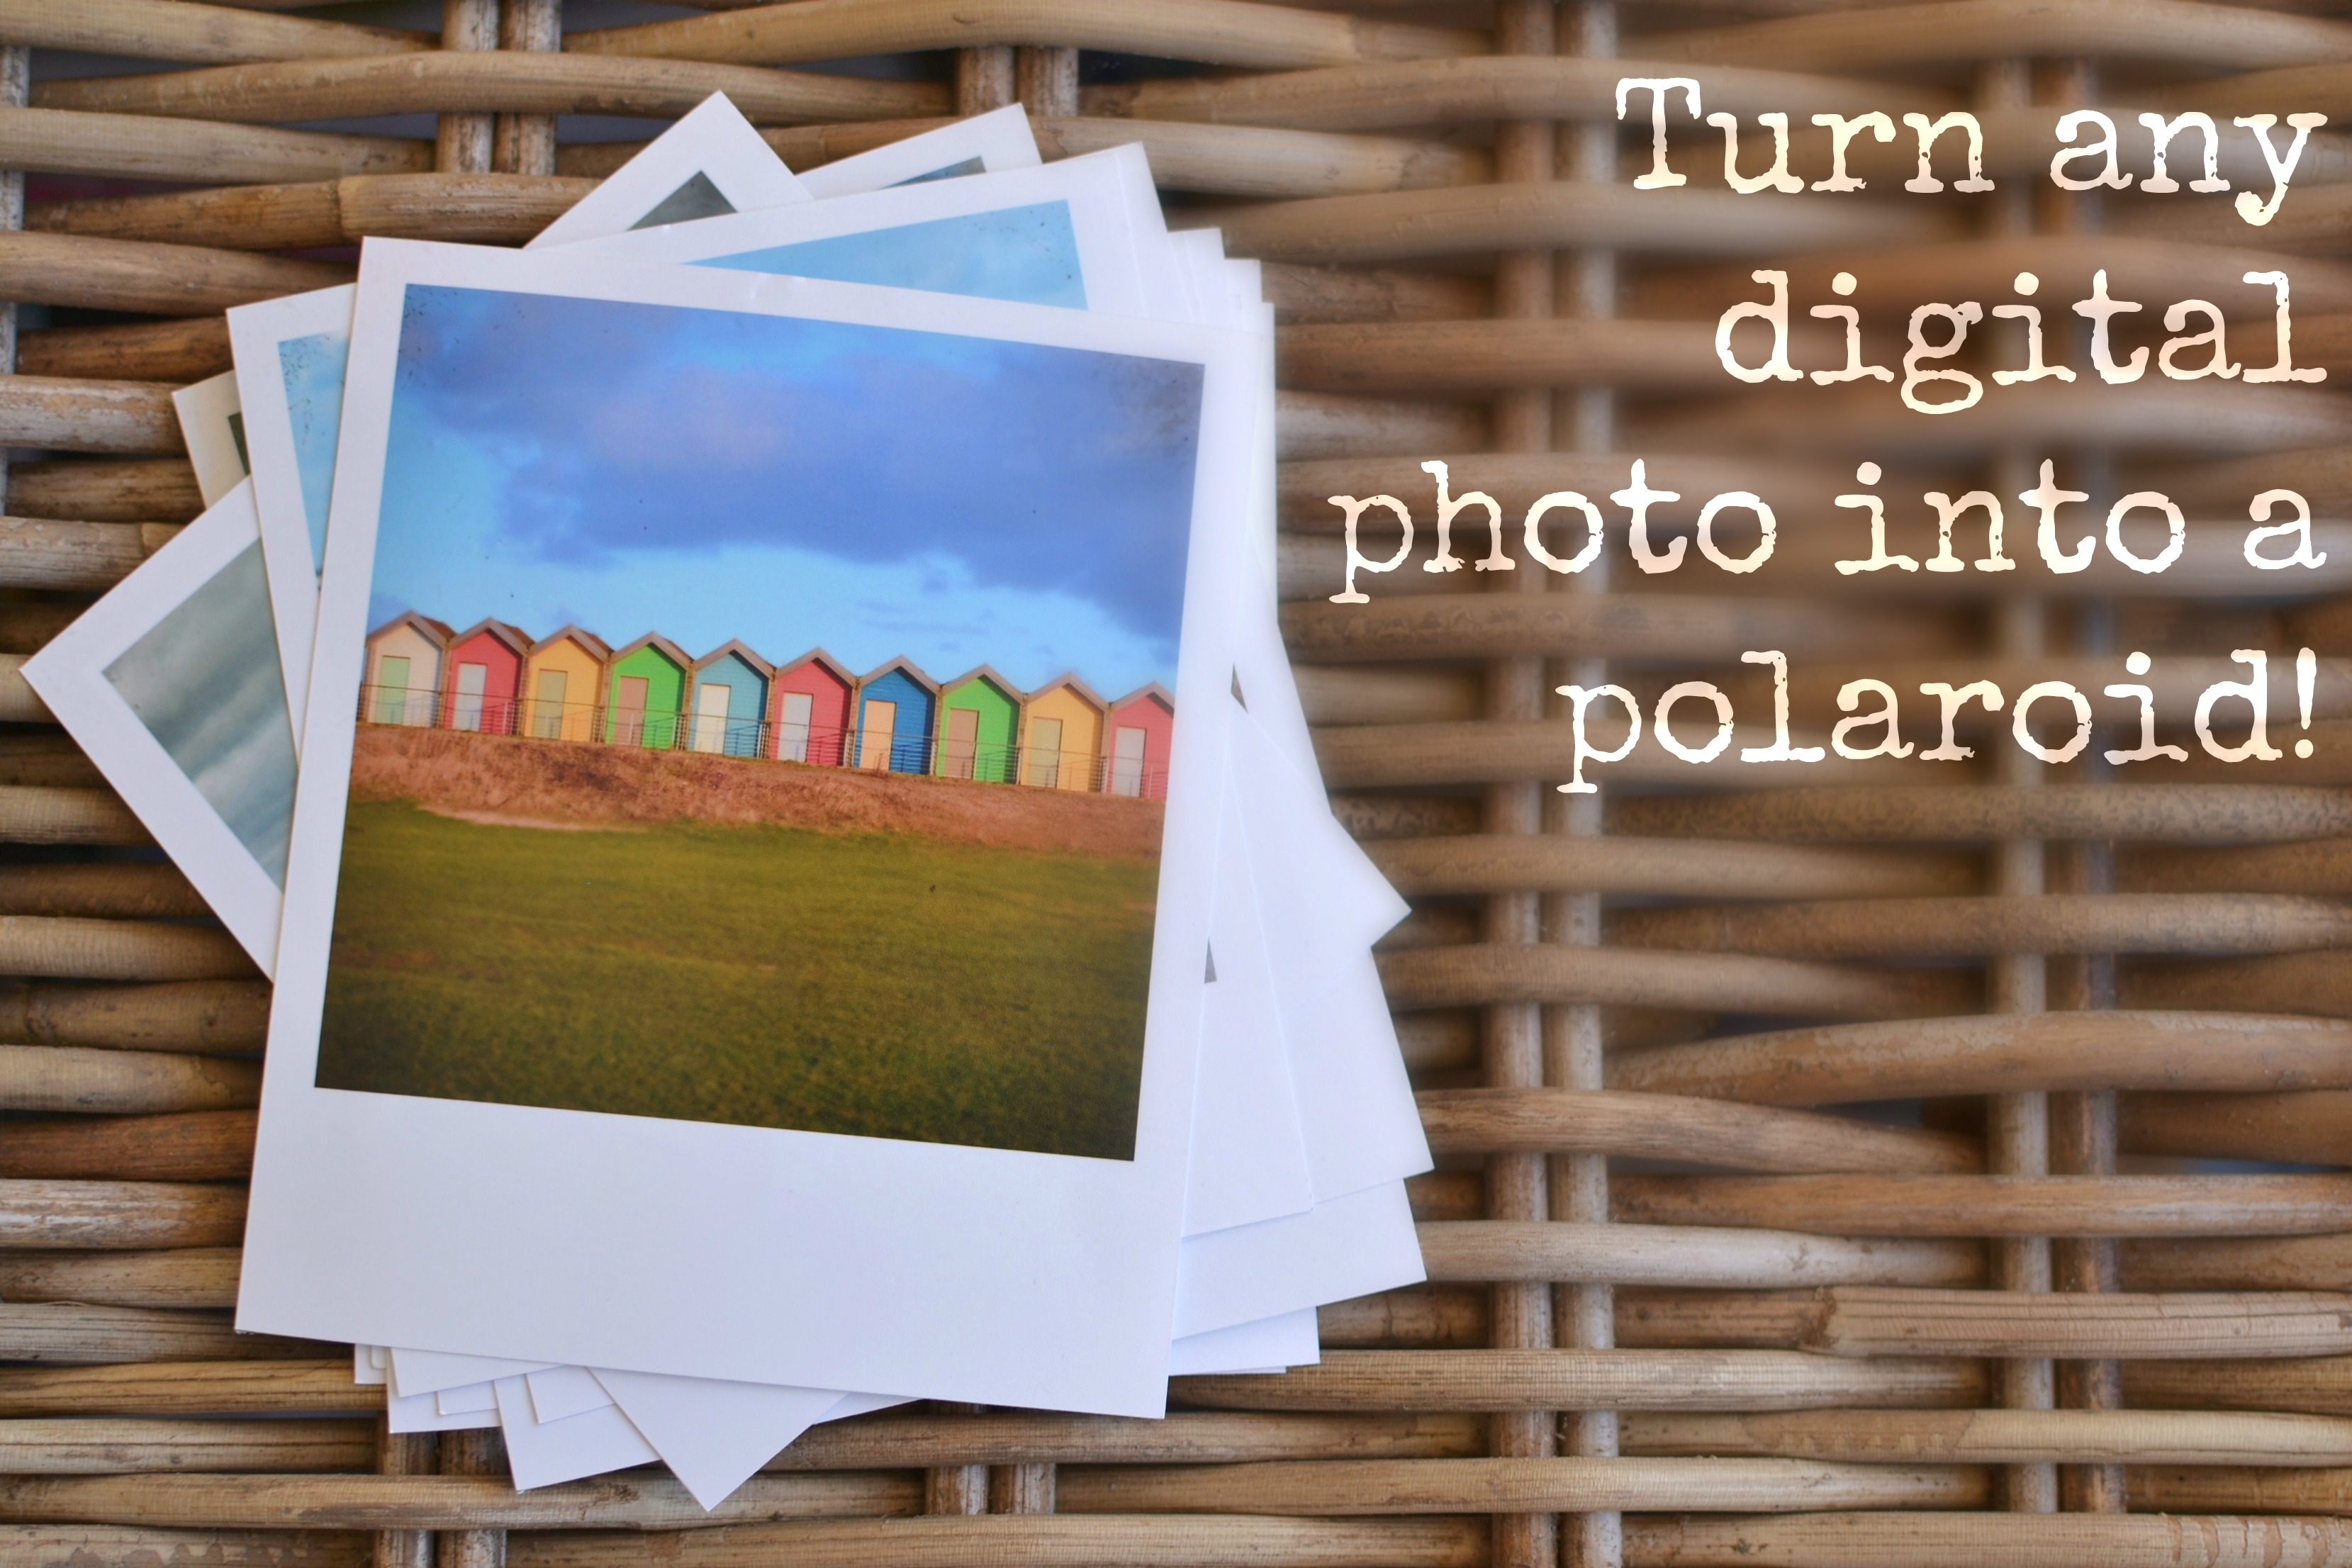 Bien connu Print any photo as a polaroid: free template! - Decorator's Notebook ZY32